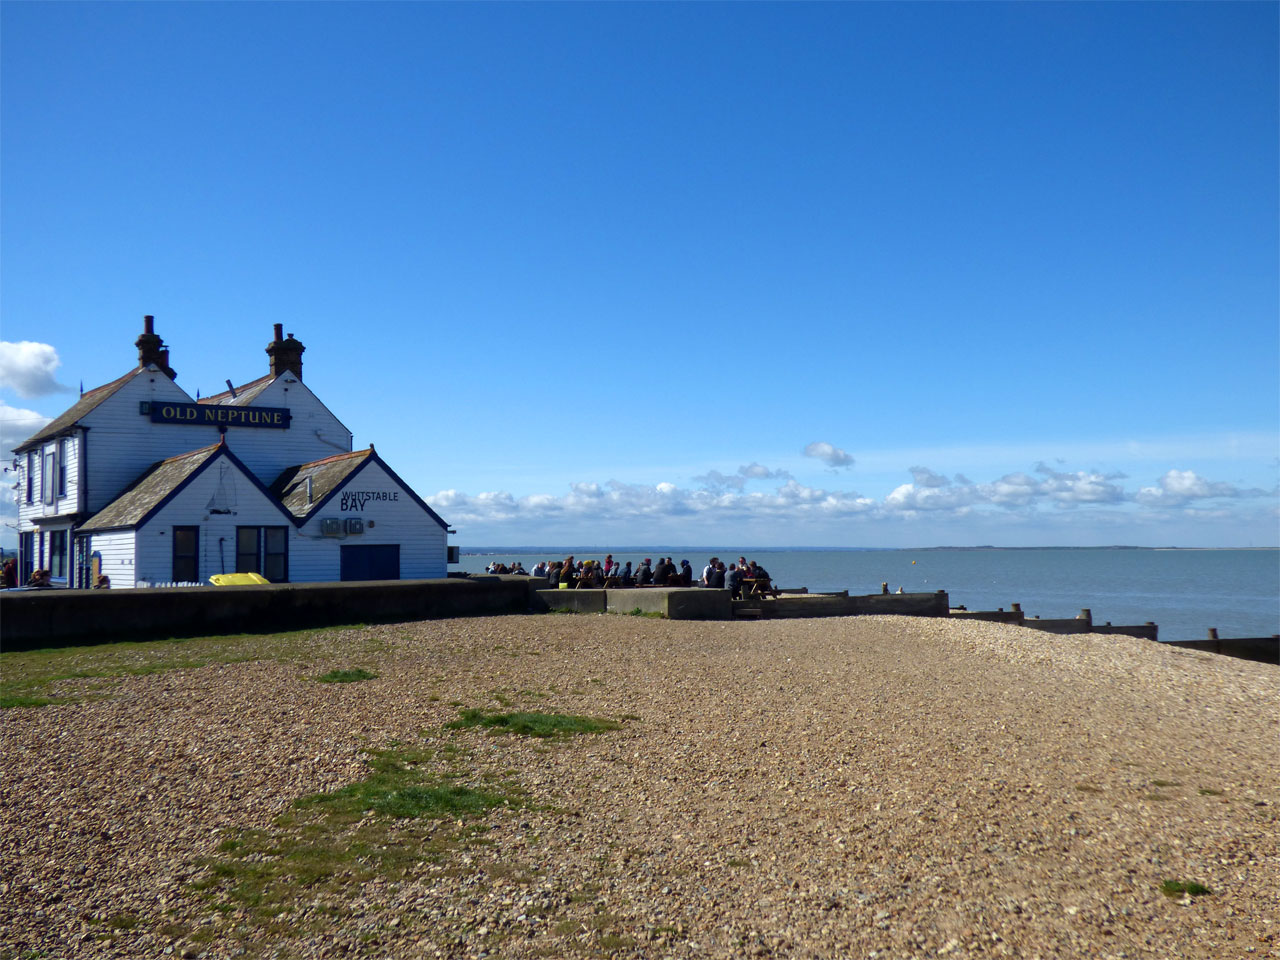 The Old Neptune, Whitstable, Kent